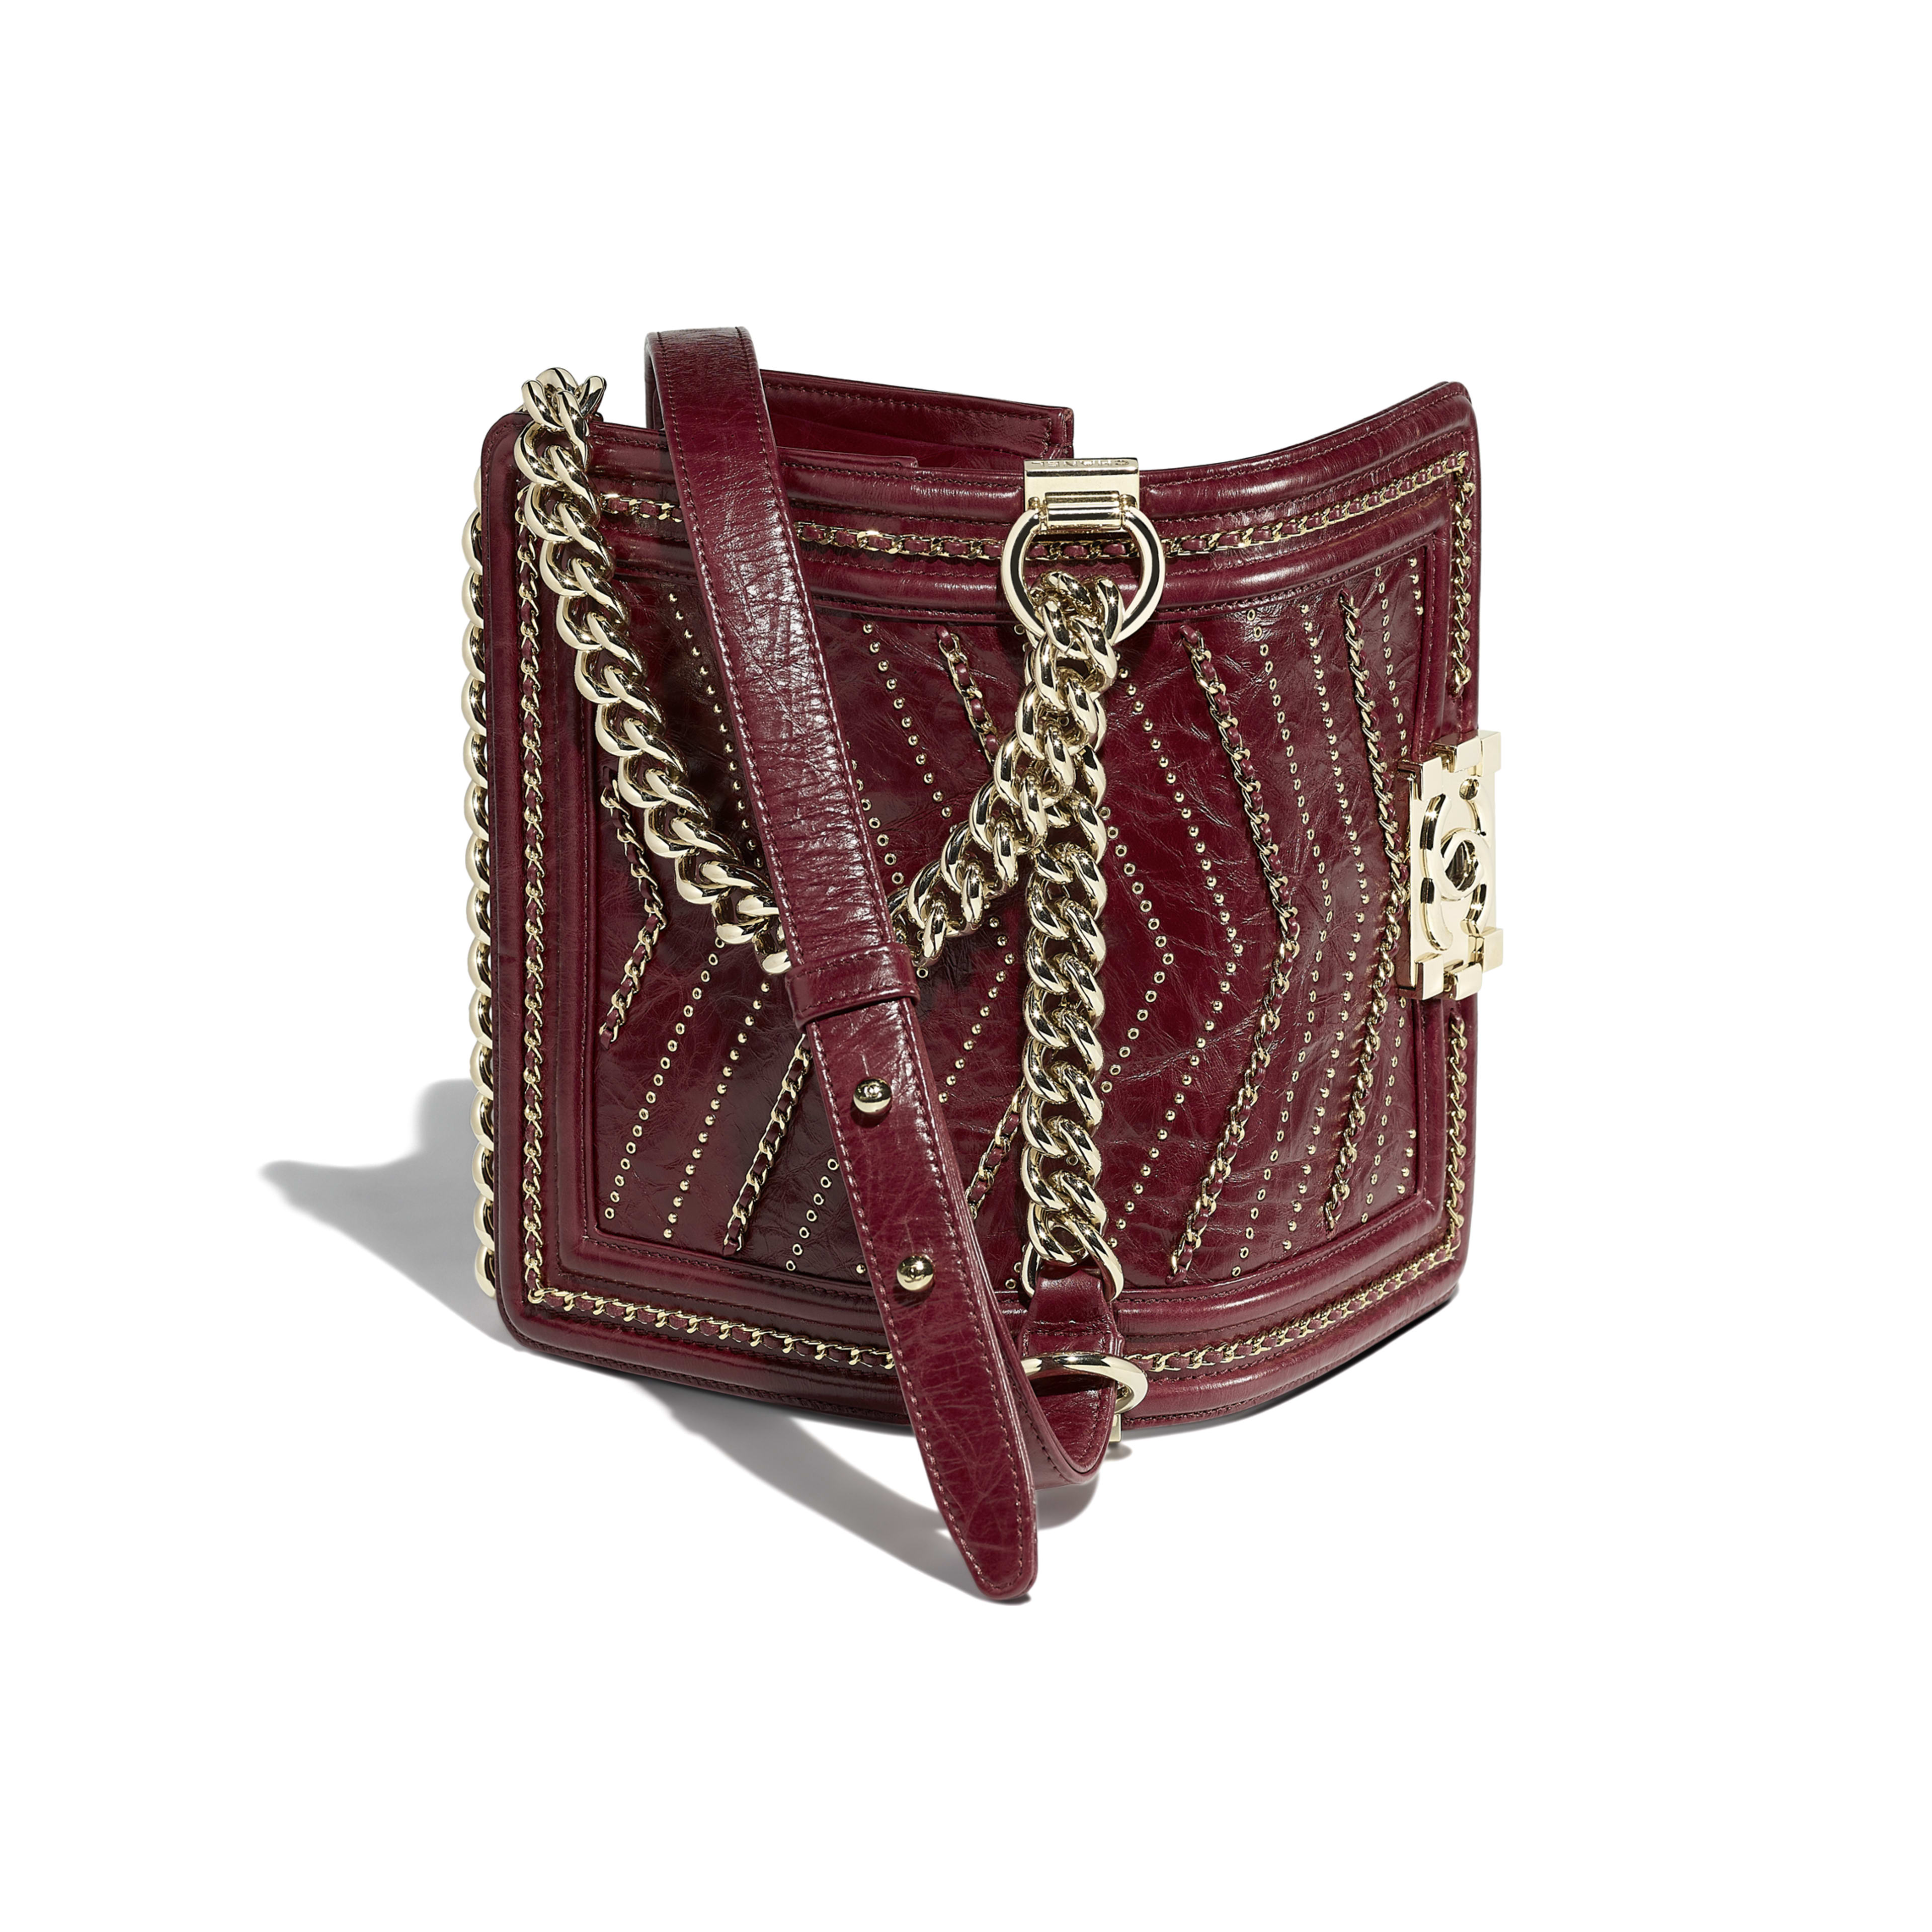 Small BOY CHANEL Handbag - Red - Crumpled Calfskin & Gold-Tone Metal - Other view - see full sized version